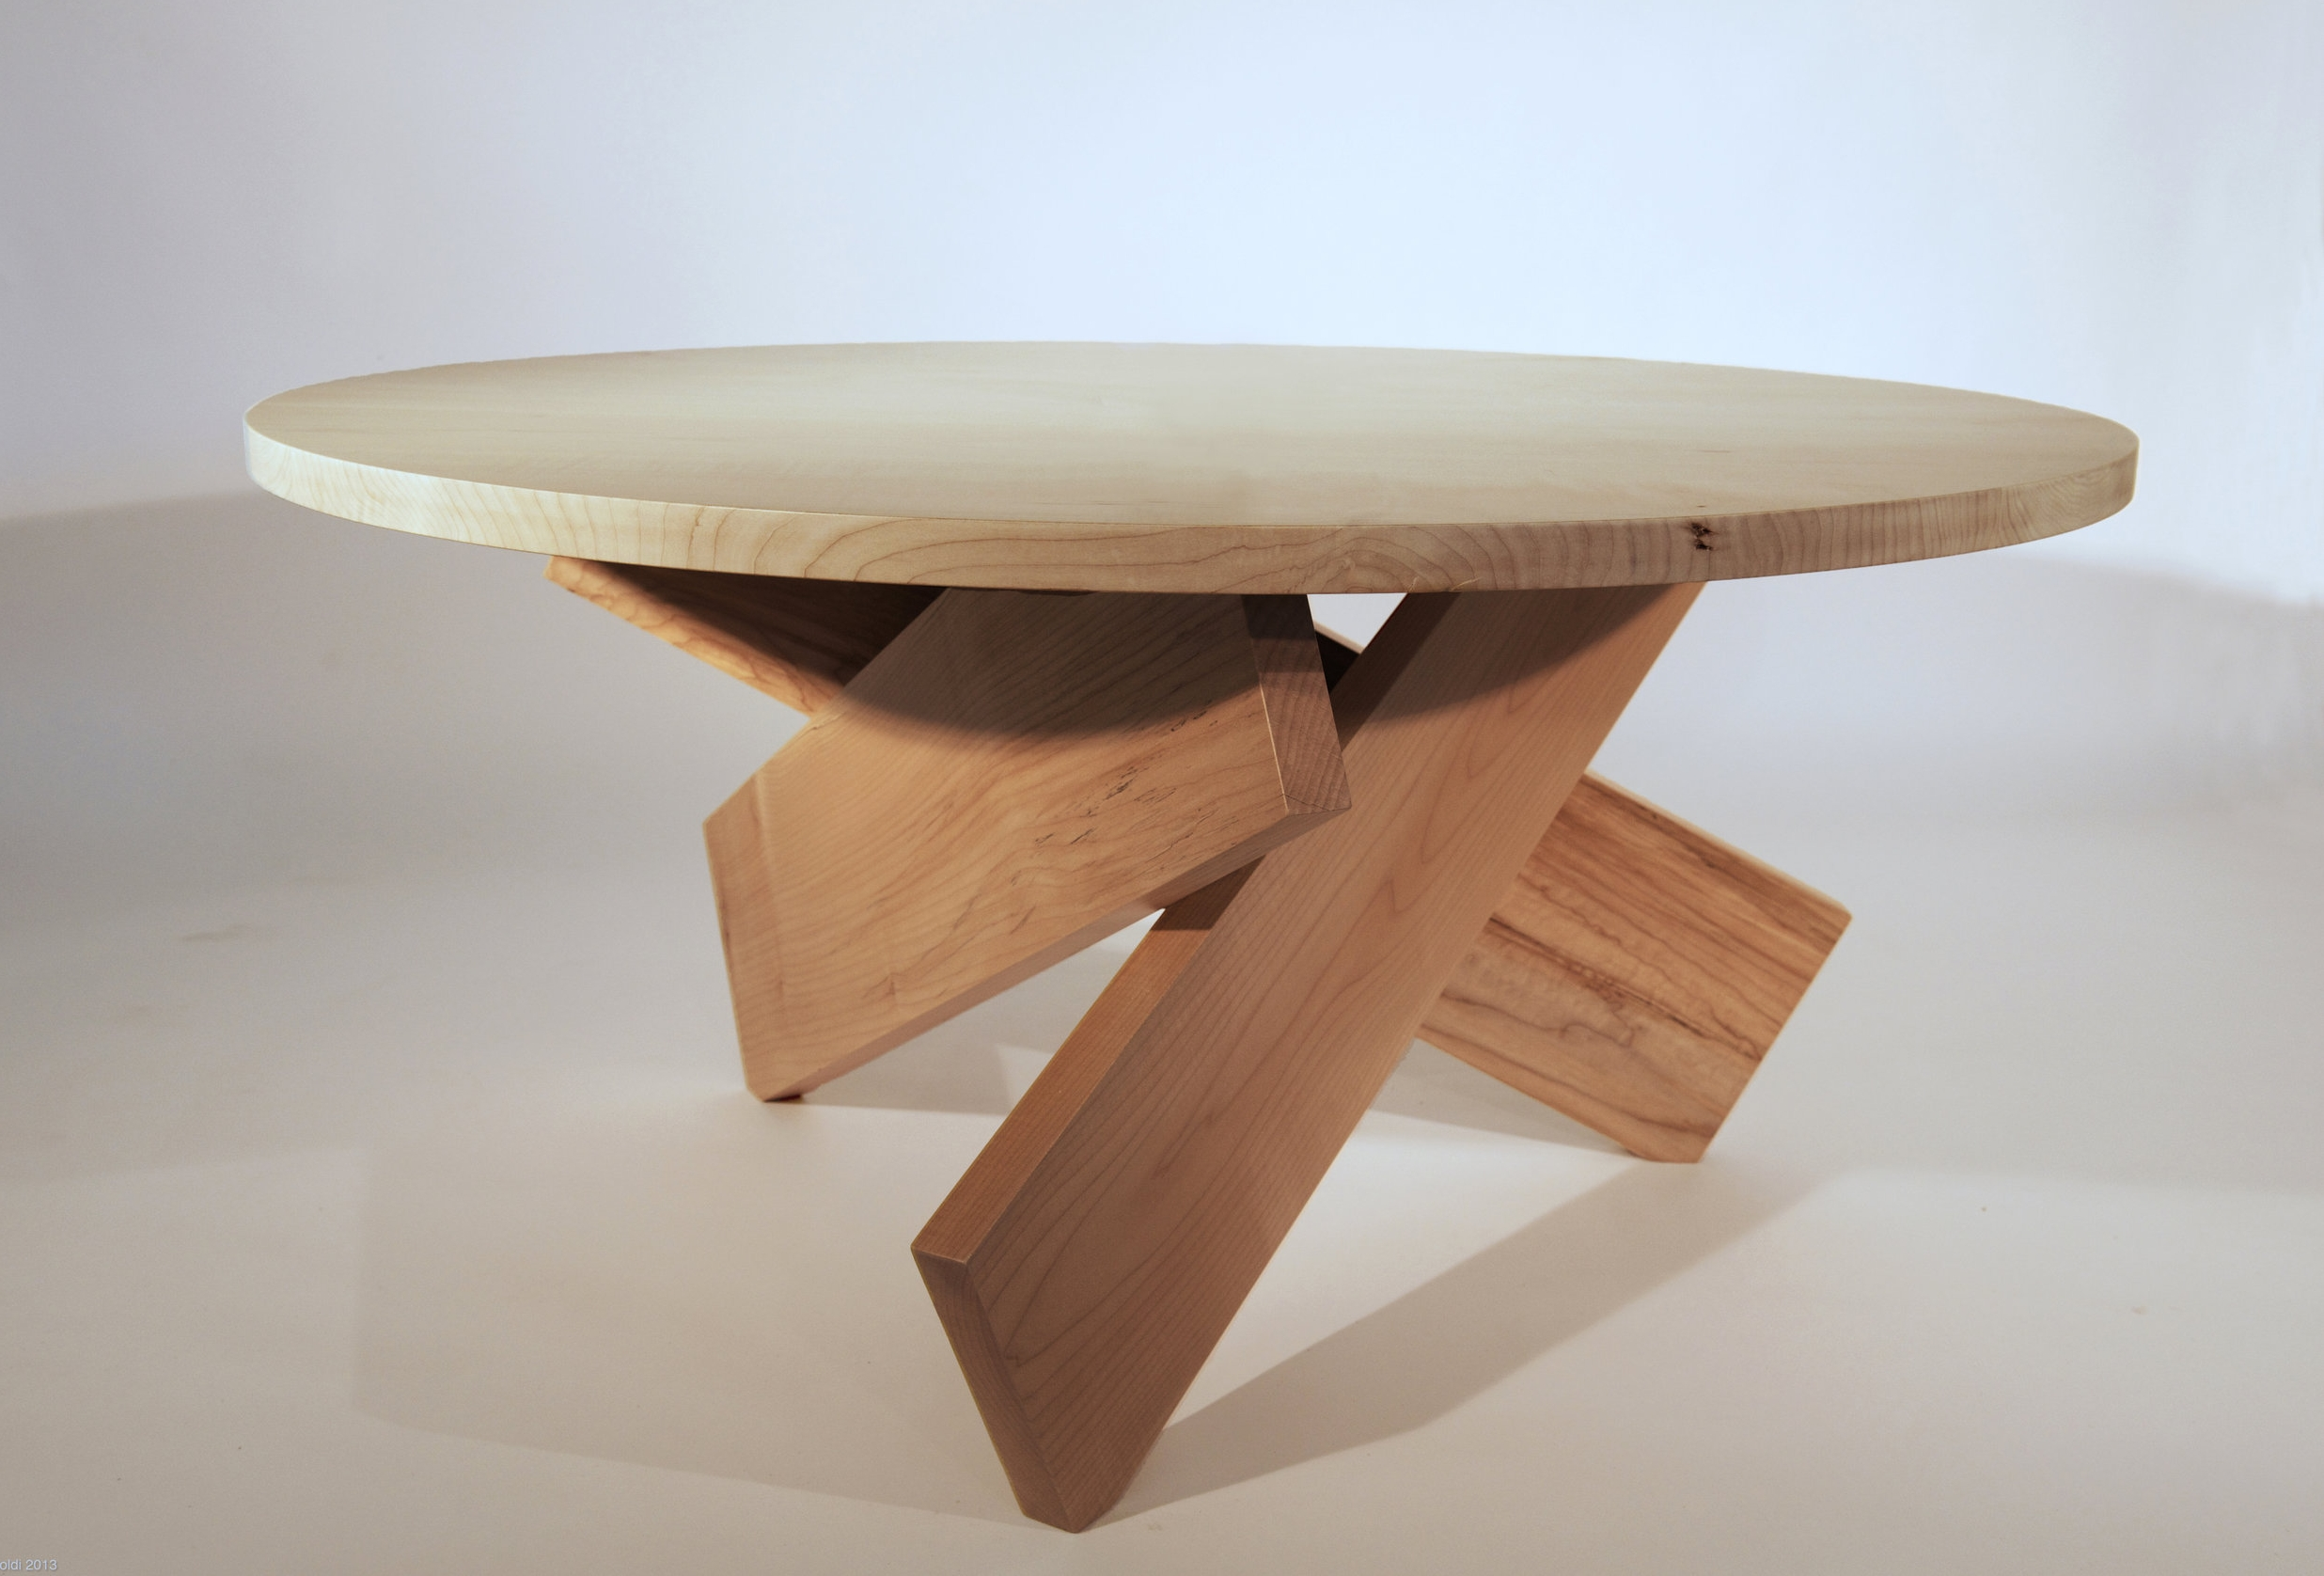 CAMPFIRE TABLE